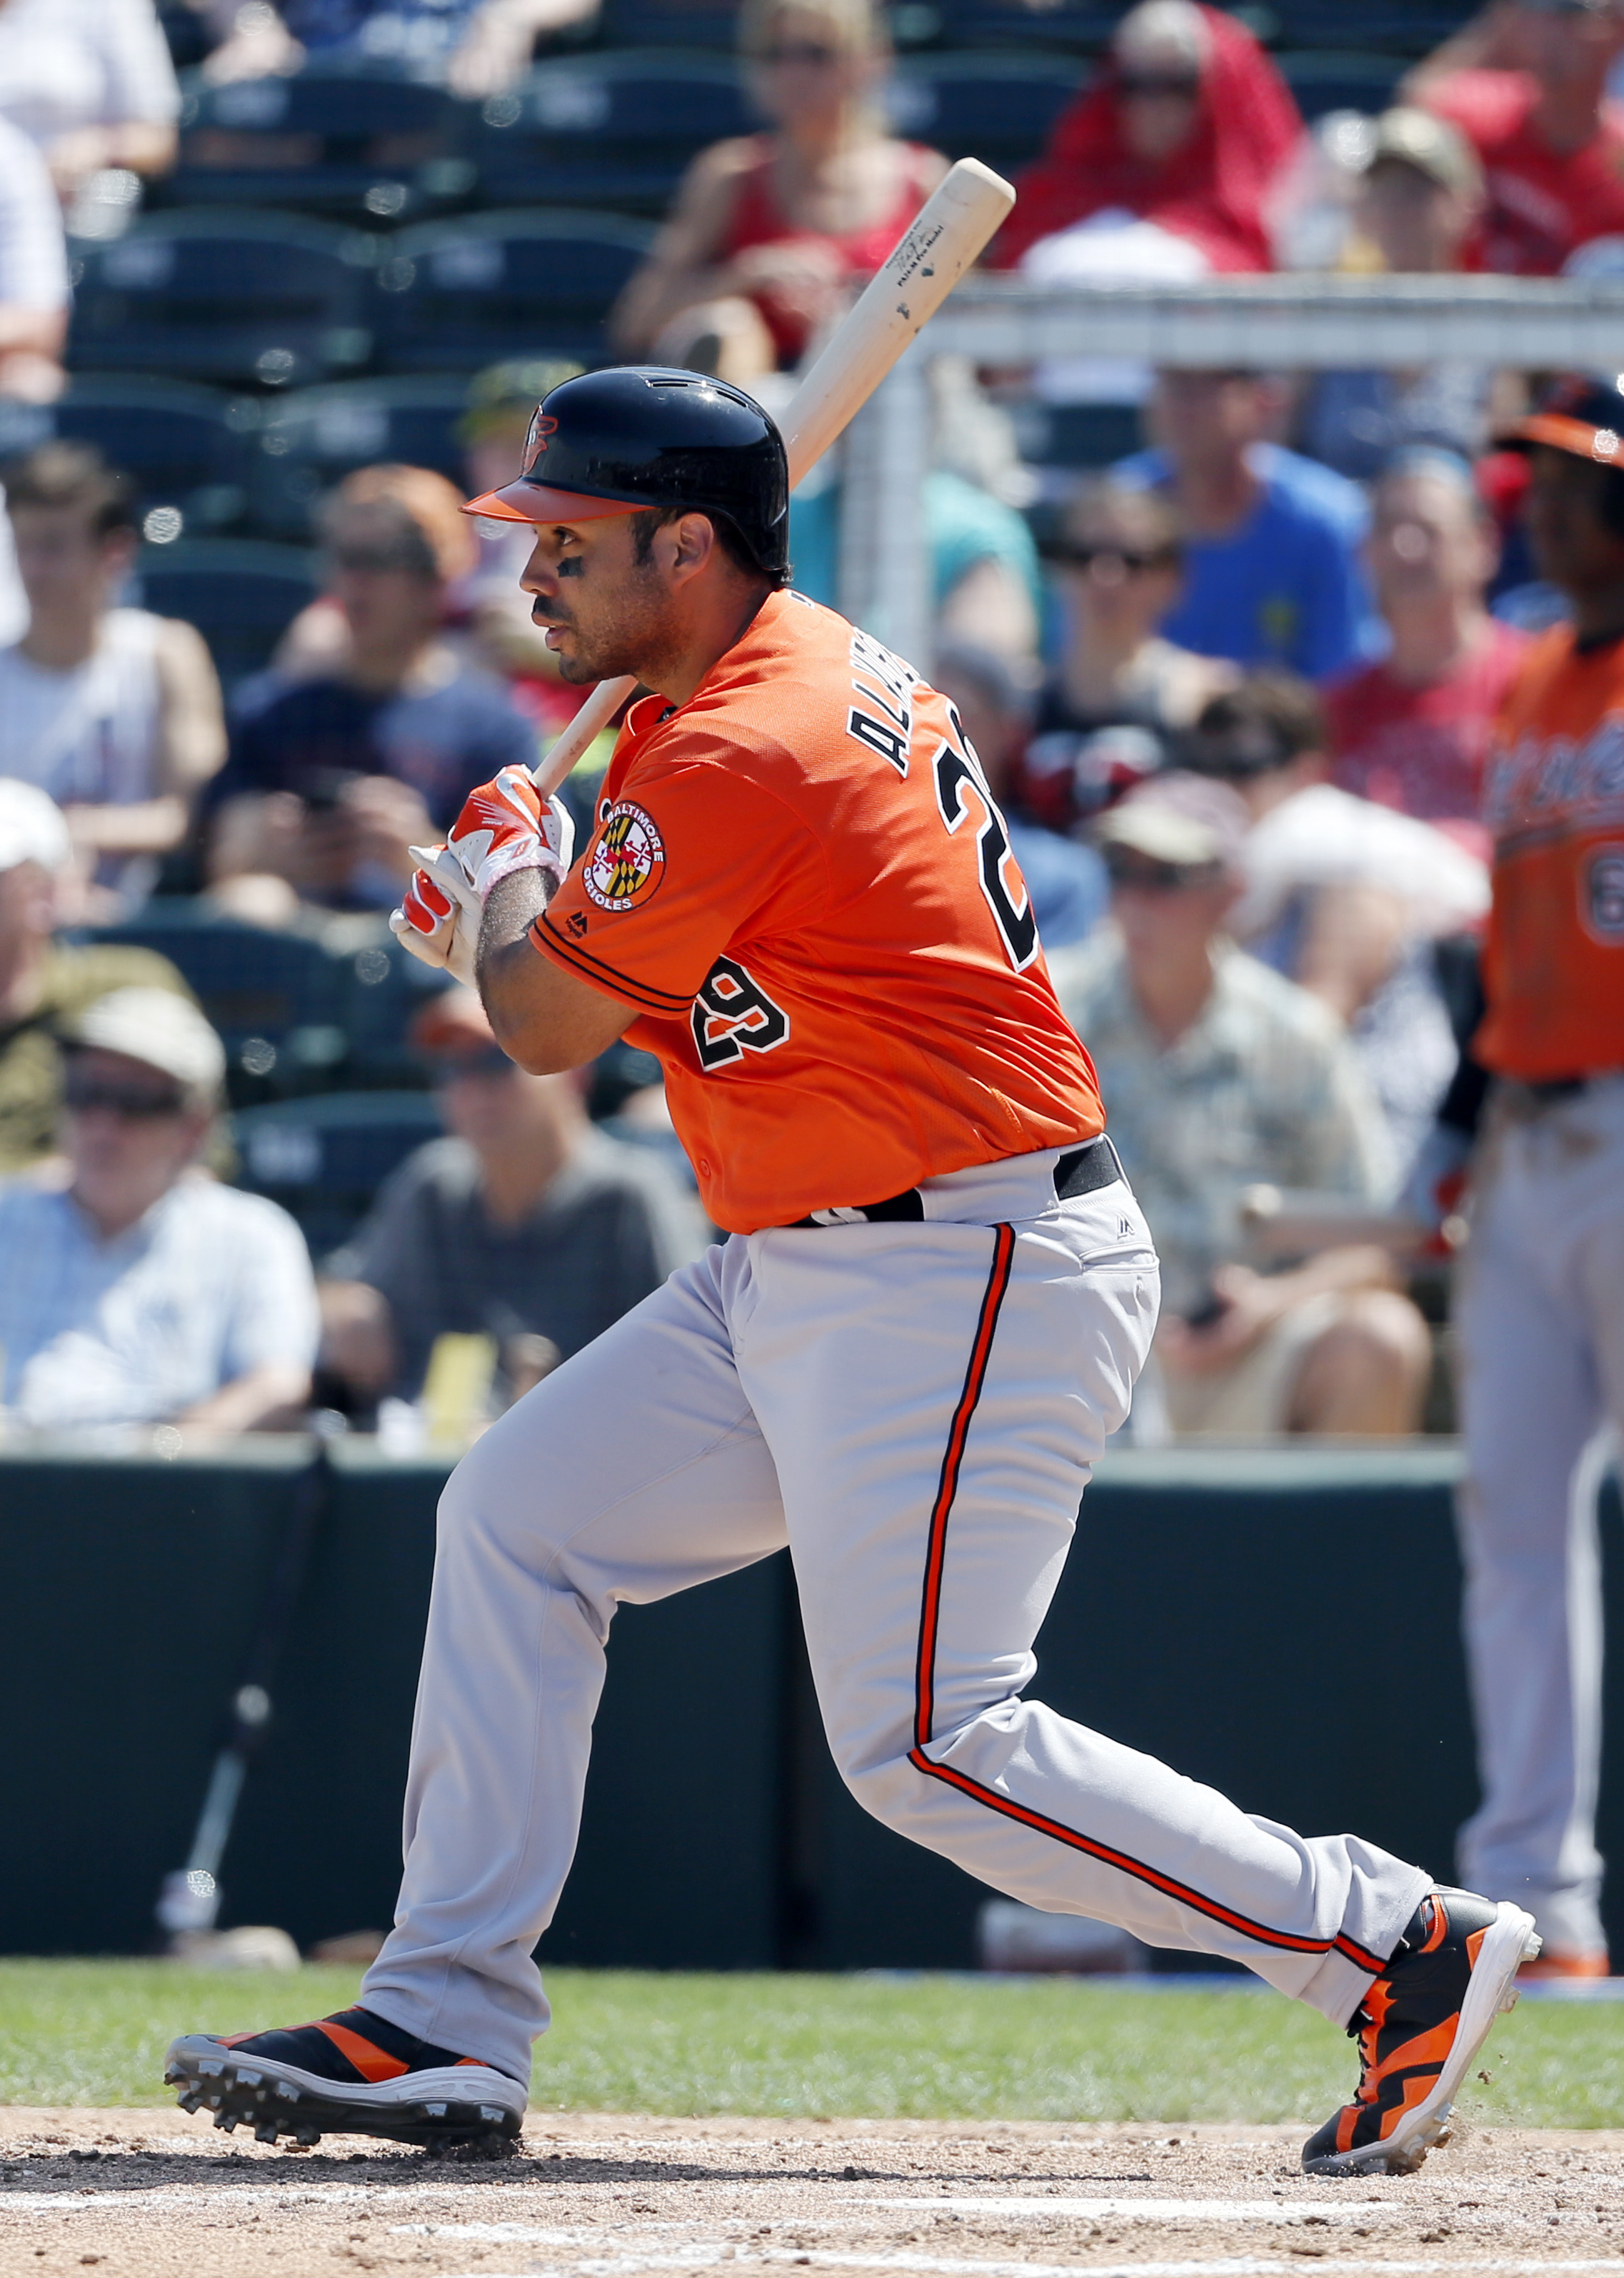 Baltimore Orioles' Pedro Alvarez (29) follows through on a fielder's choice in the third inning of a spring training baseball game against the Minnesota Twins on Sunday, March 13, 2016, in Fort Myers , Fla.  (AP Photo/Tony Gutierrez)